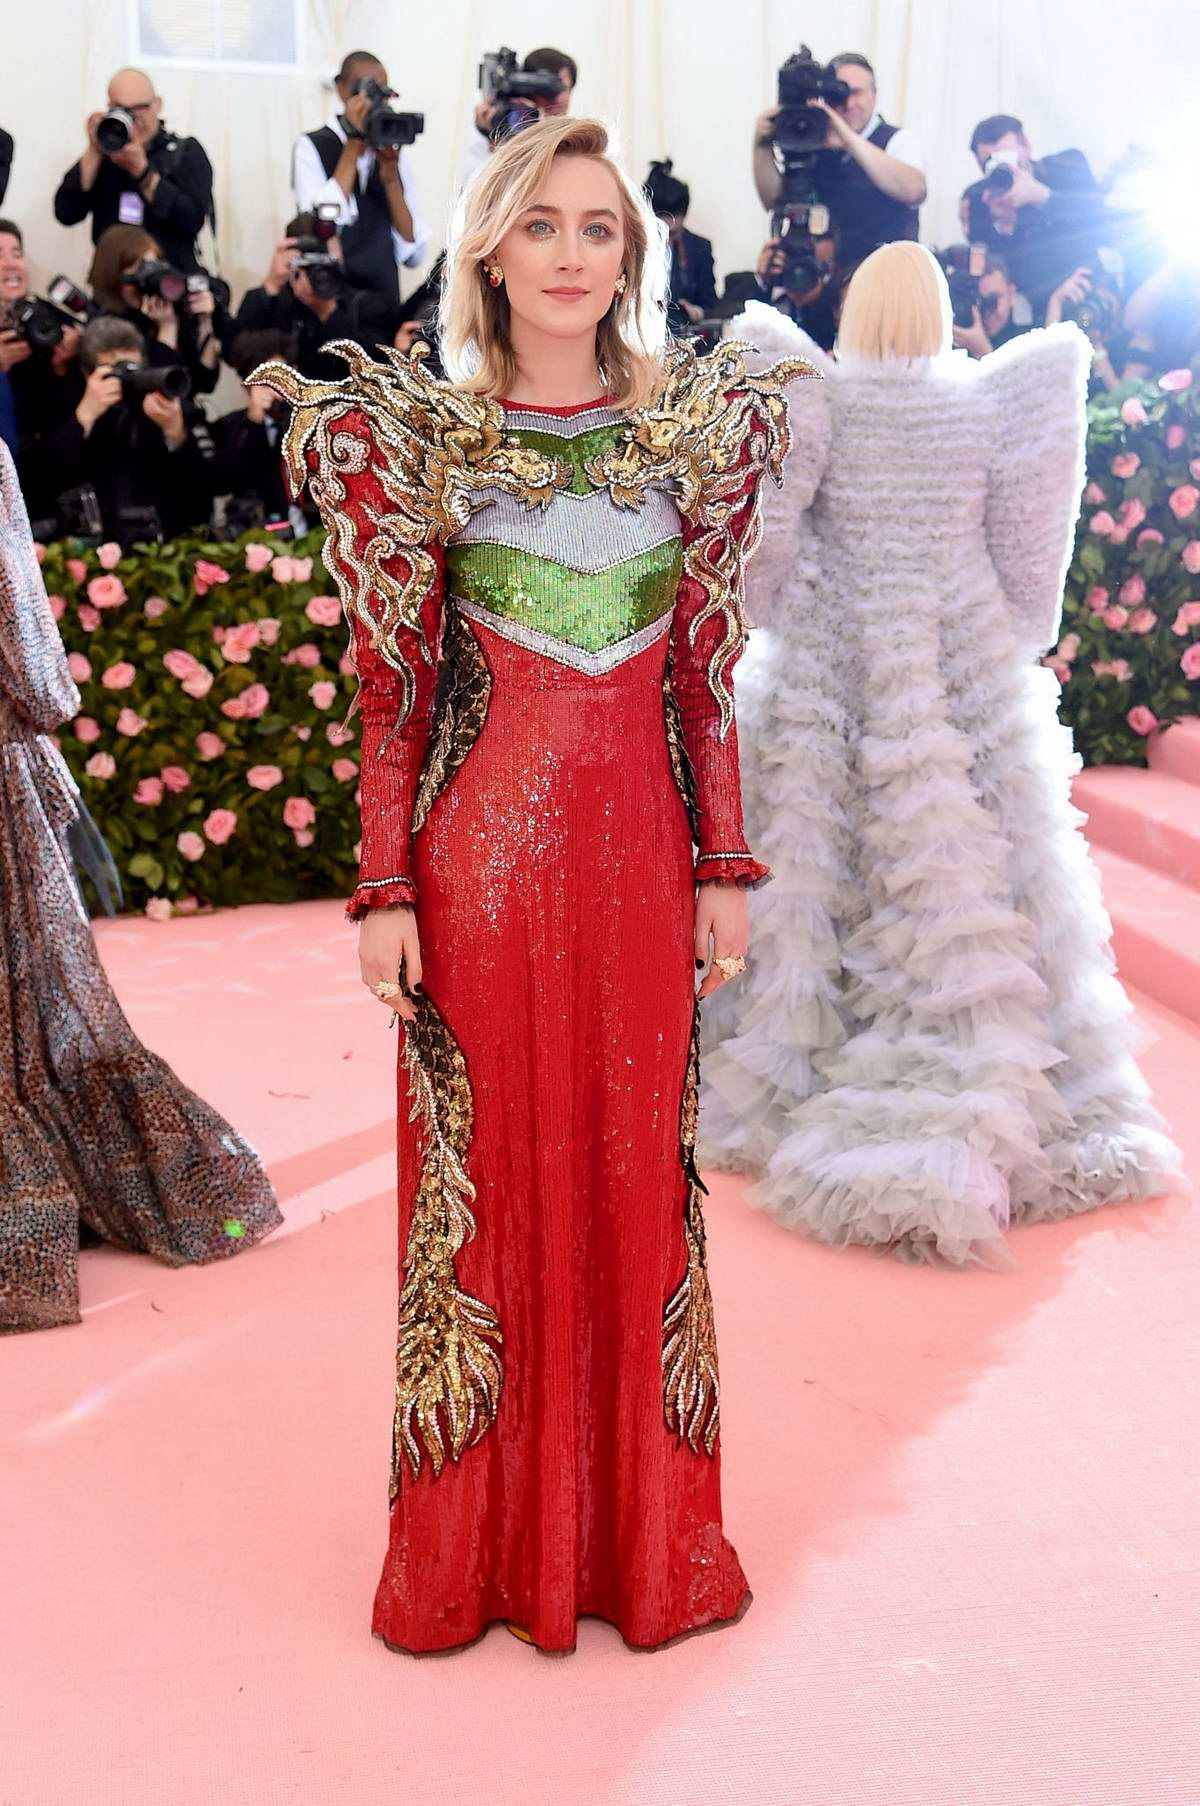 Saoirse Ronan attends The 2019 Met Gala Celebrating Camp: Notes on Fashion in New York City